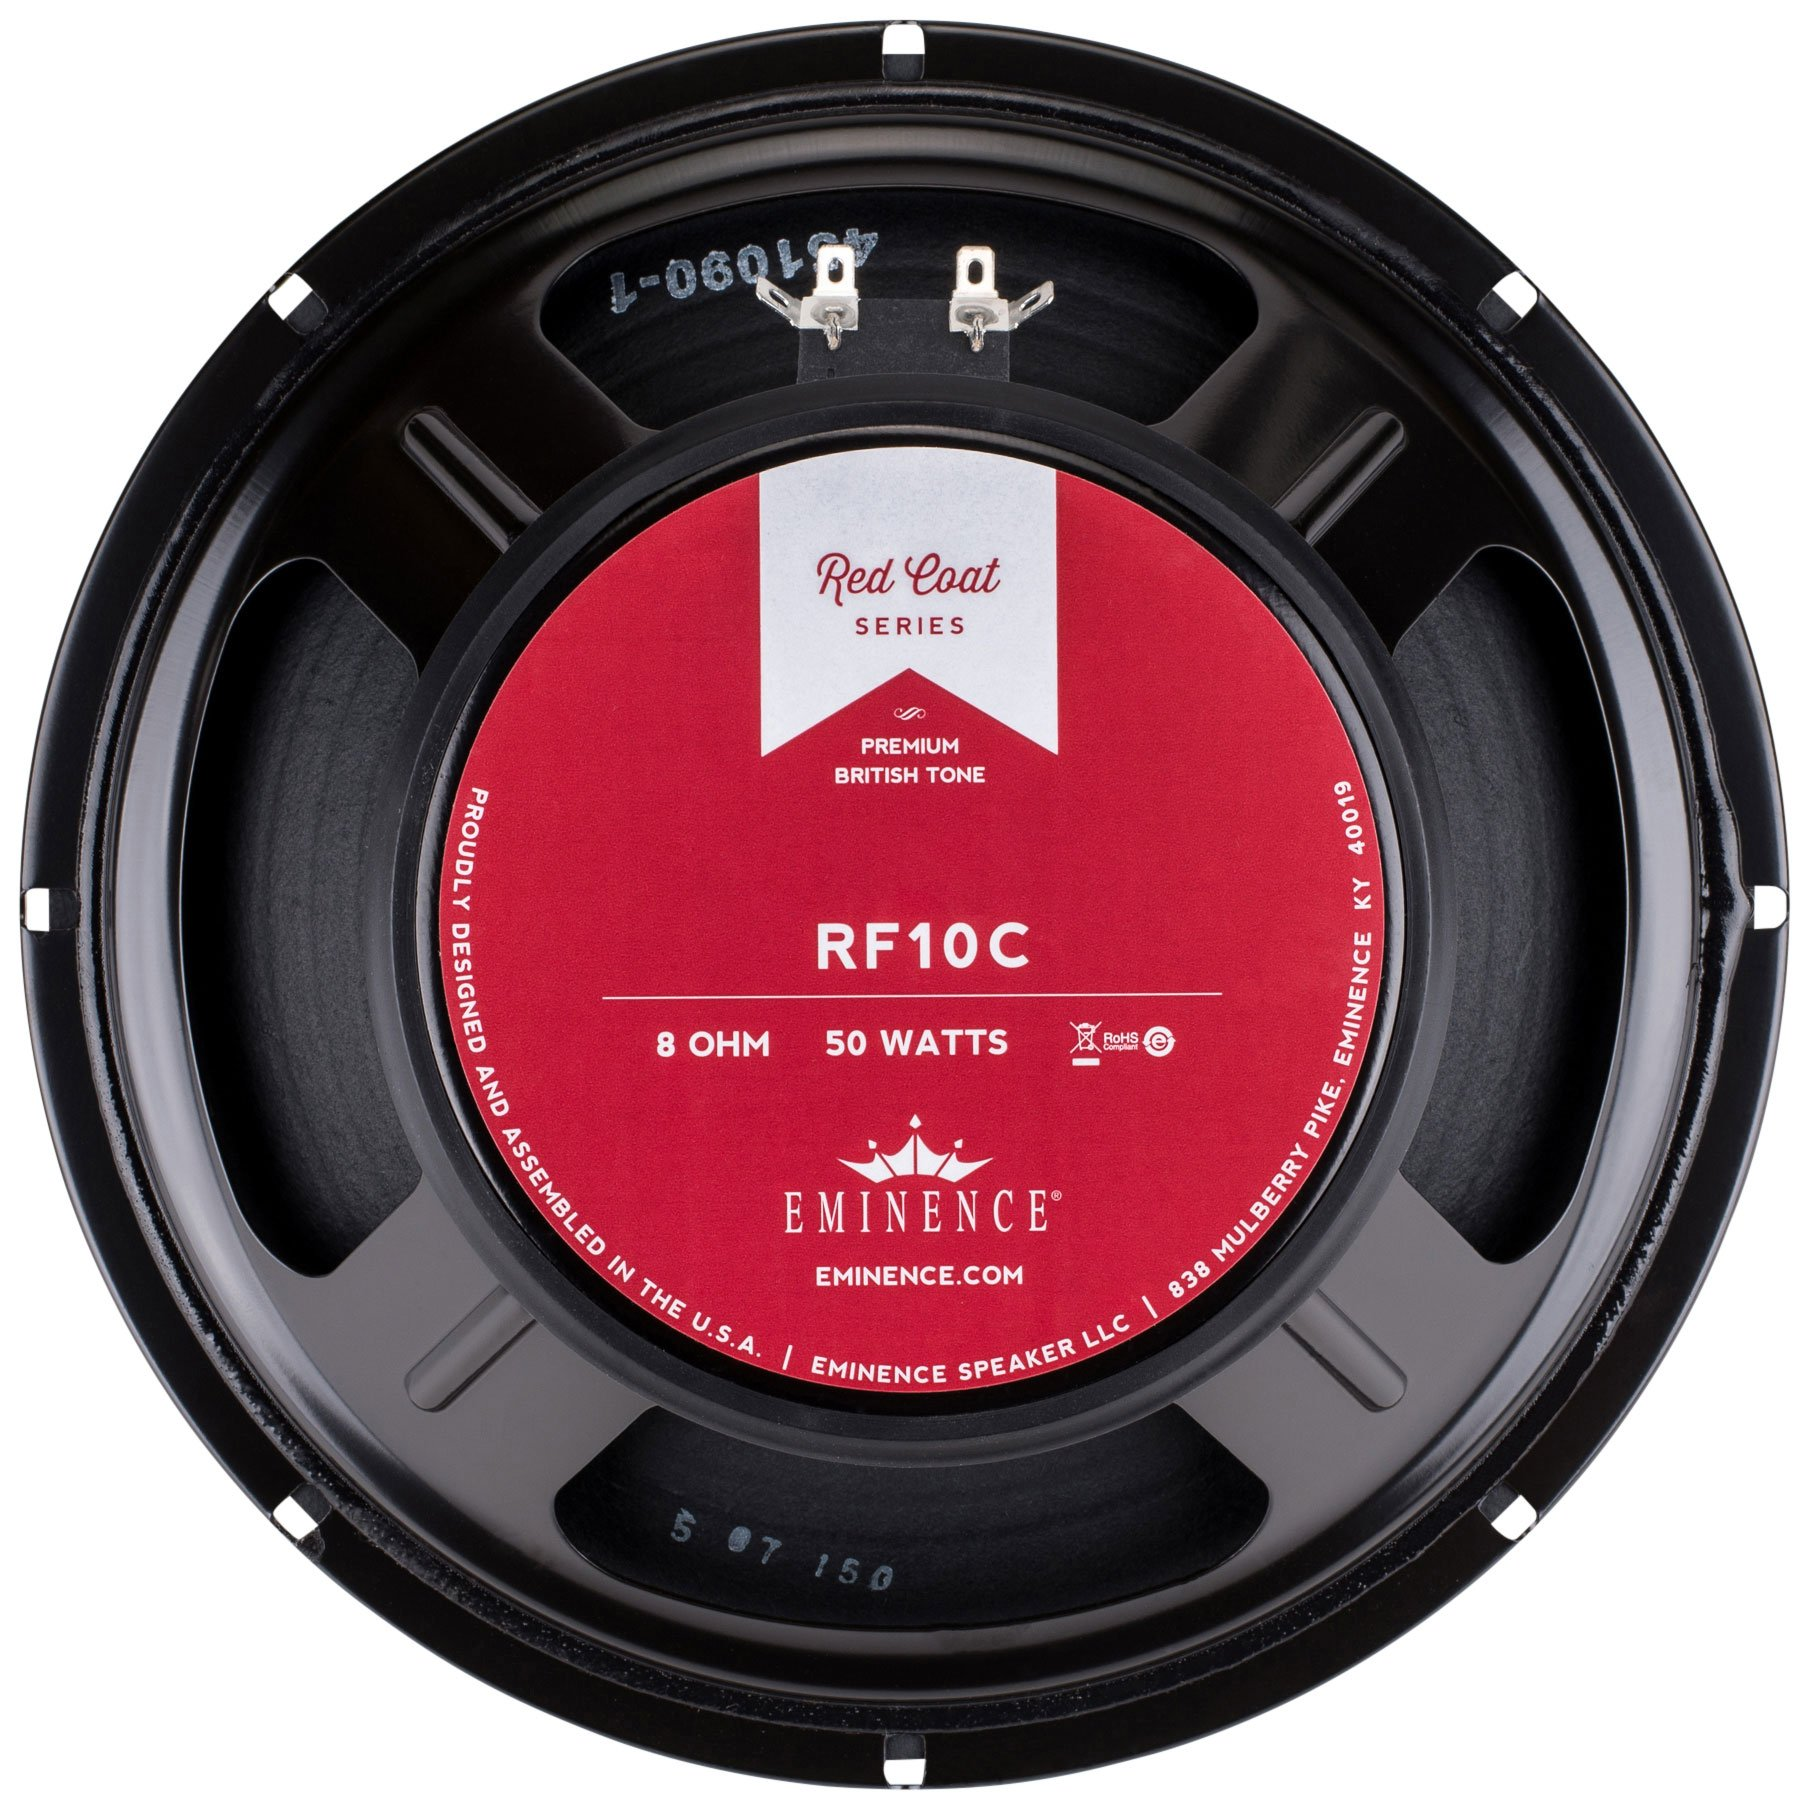 Eminence Redcoat Guitar RF10C Red Fang 10'' Guitar Speaker, 50 Watts at 8 Ohms